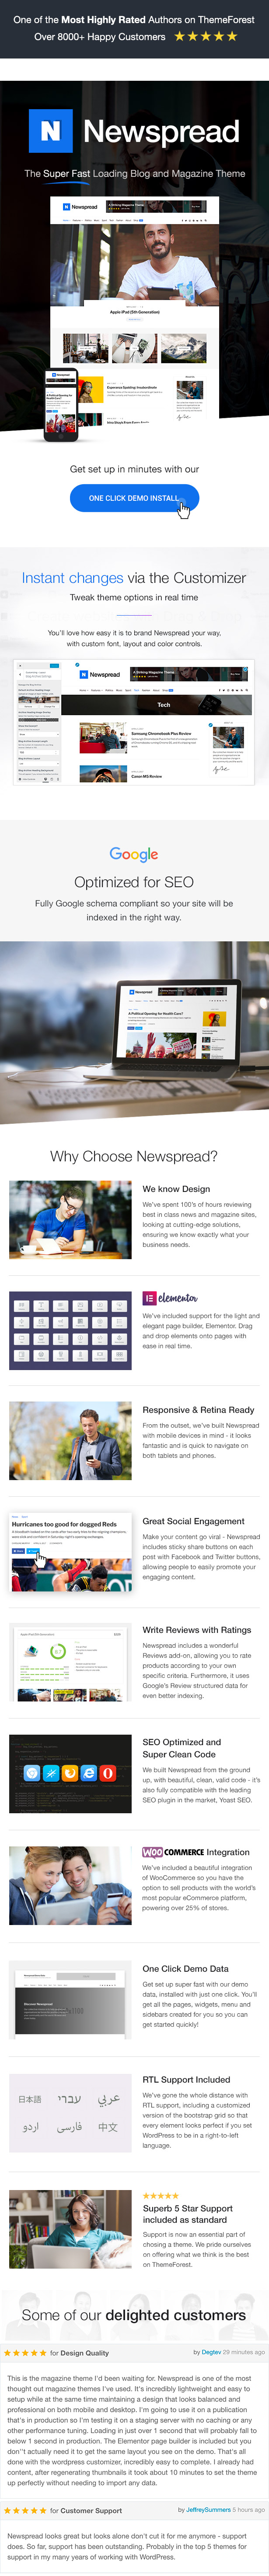 Newspread features